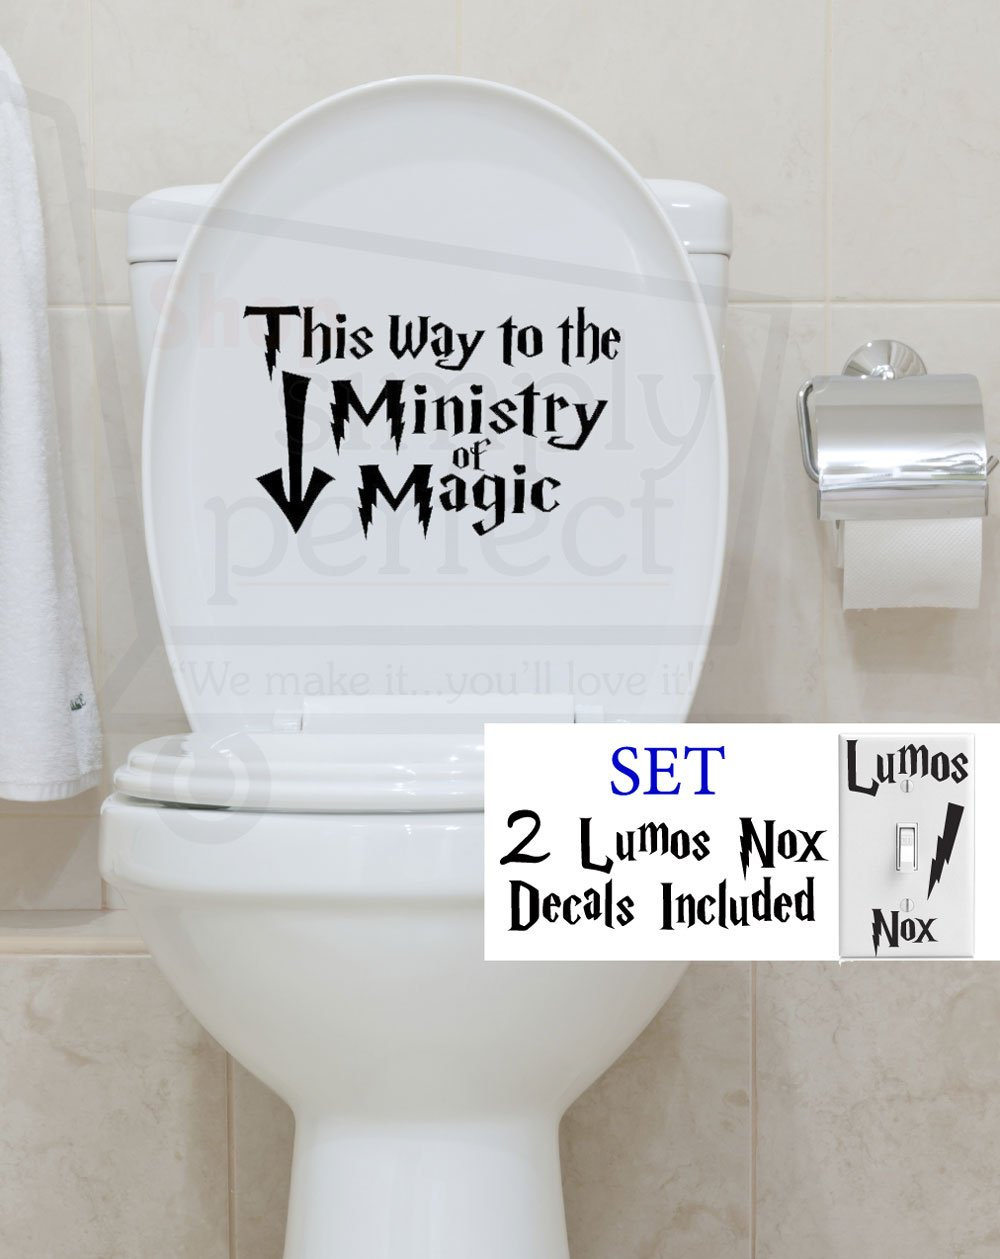 Harry Potter This Way to the Ministry of Magic with arrow Bathroom Toilet Decal by Shop Simply Perfect